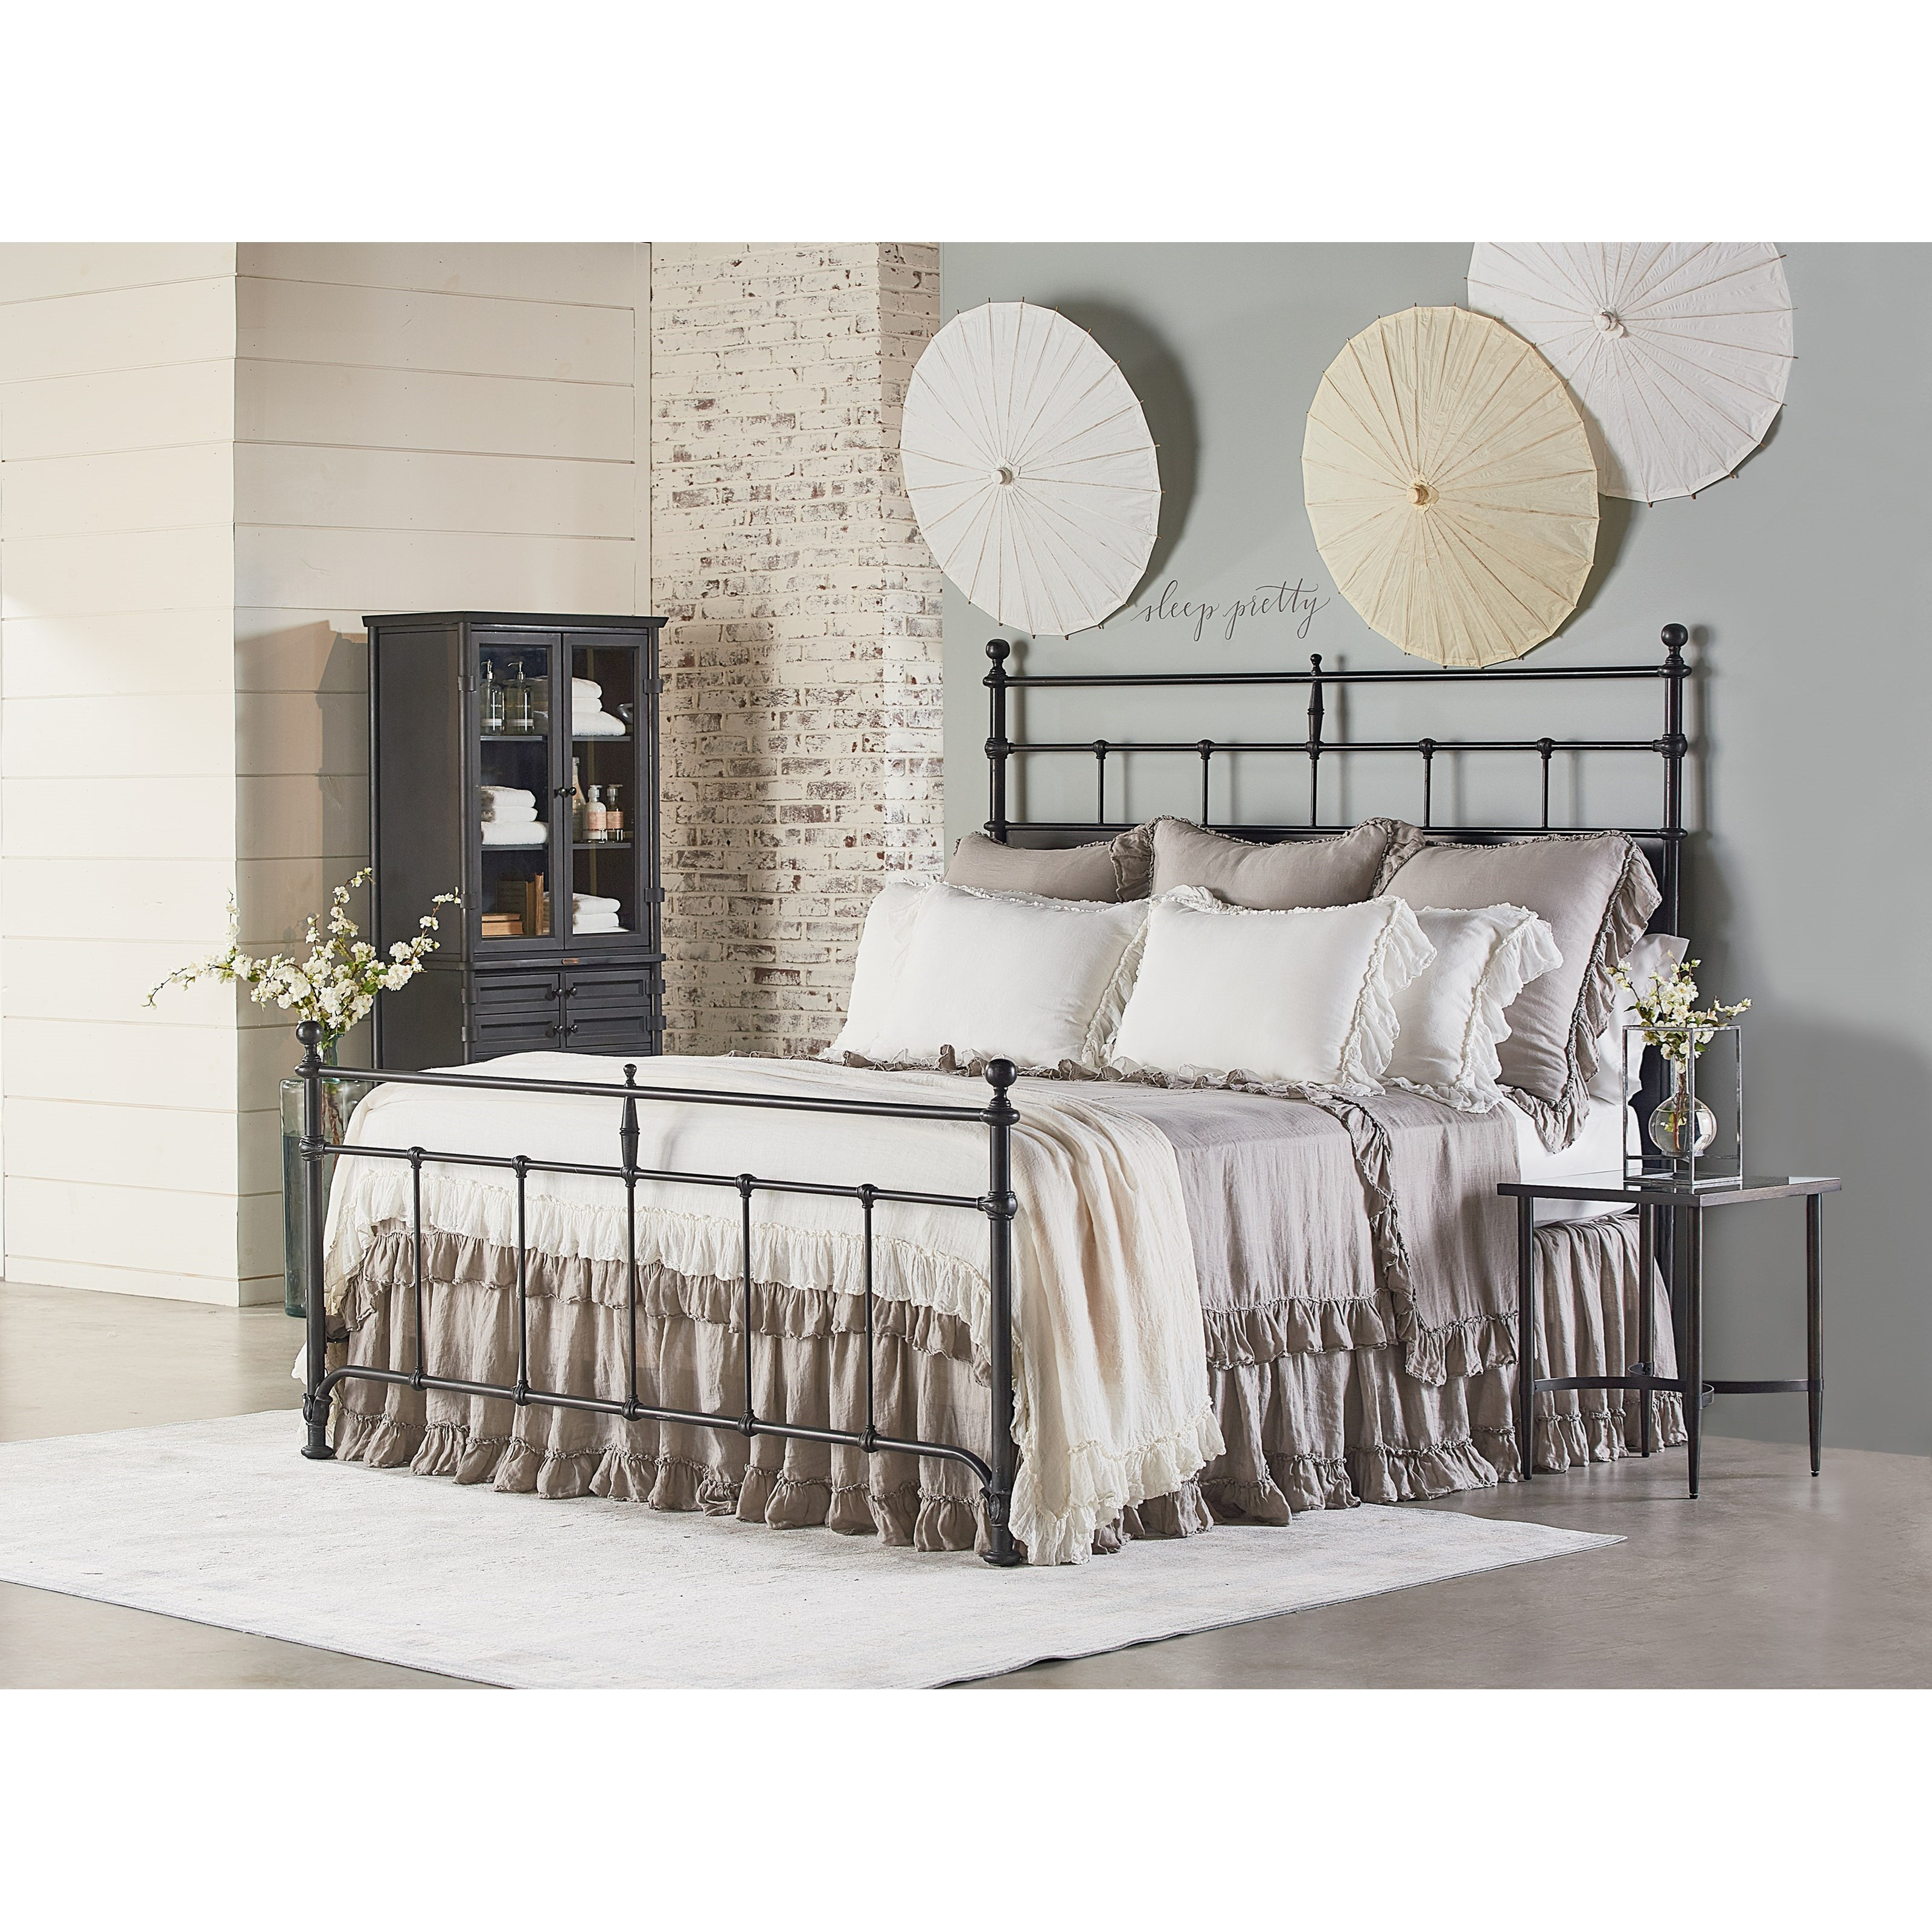 Magnolia home by joanna gaines traditional king vintage - Joanna gaines bedding collection ...